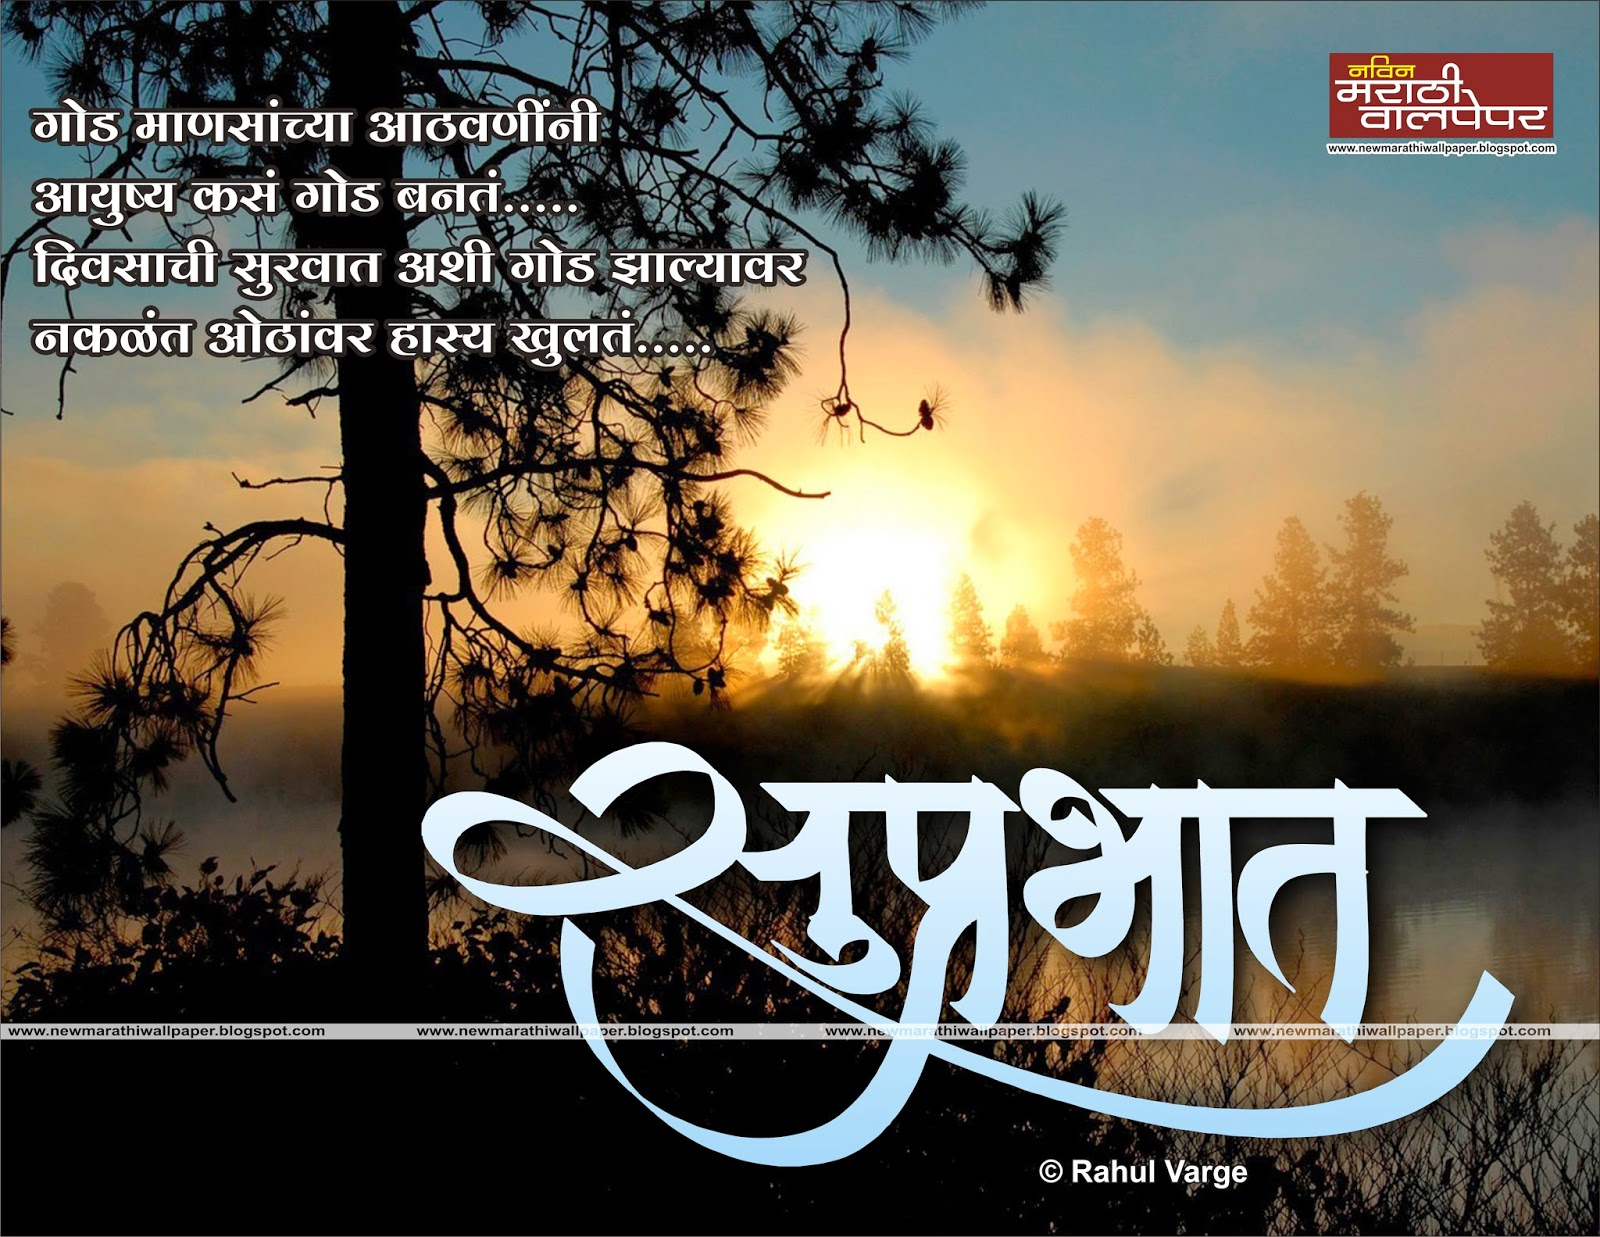 Marathi Wallpapers For Mobile | Auto Design Tech